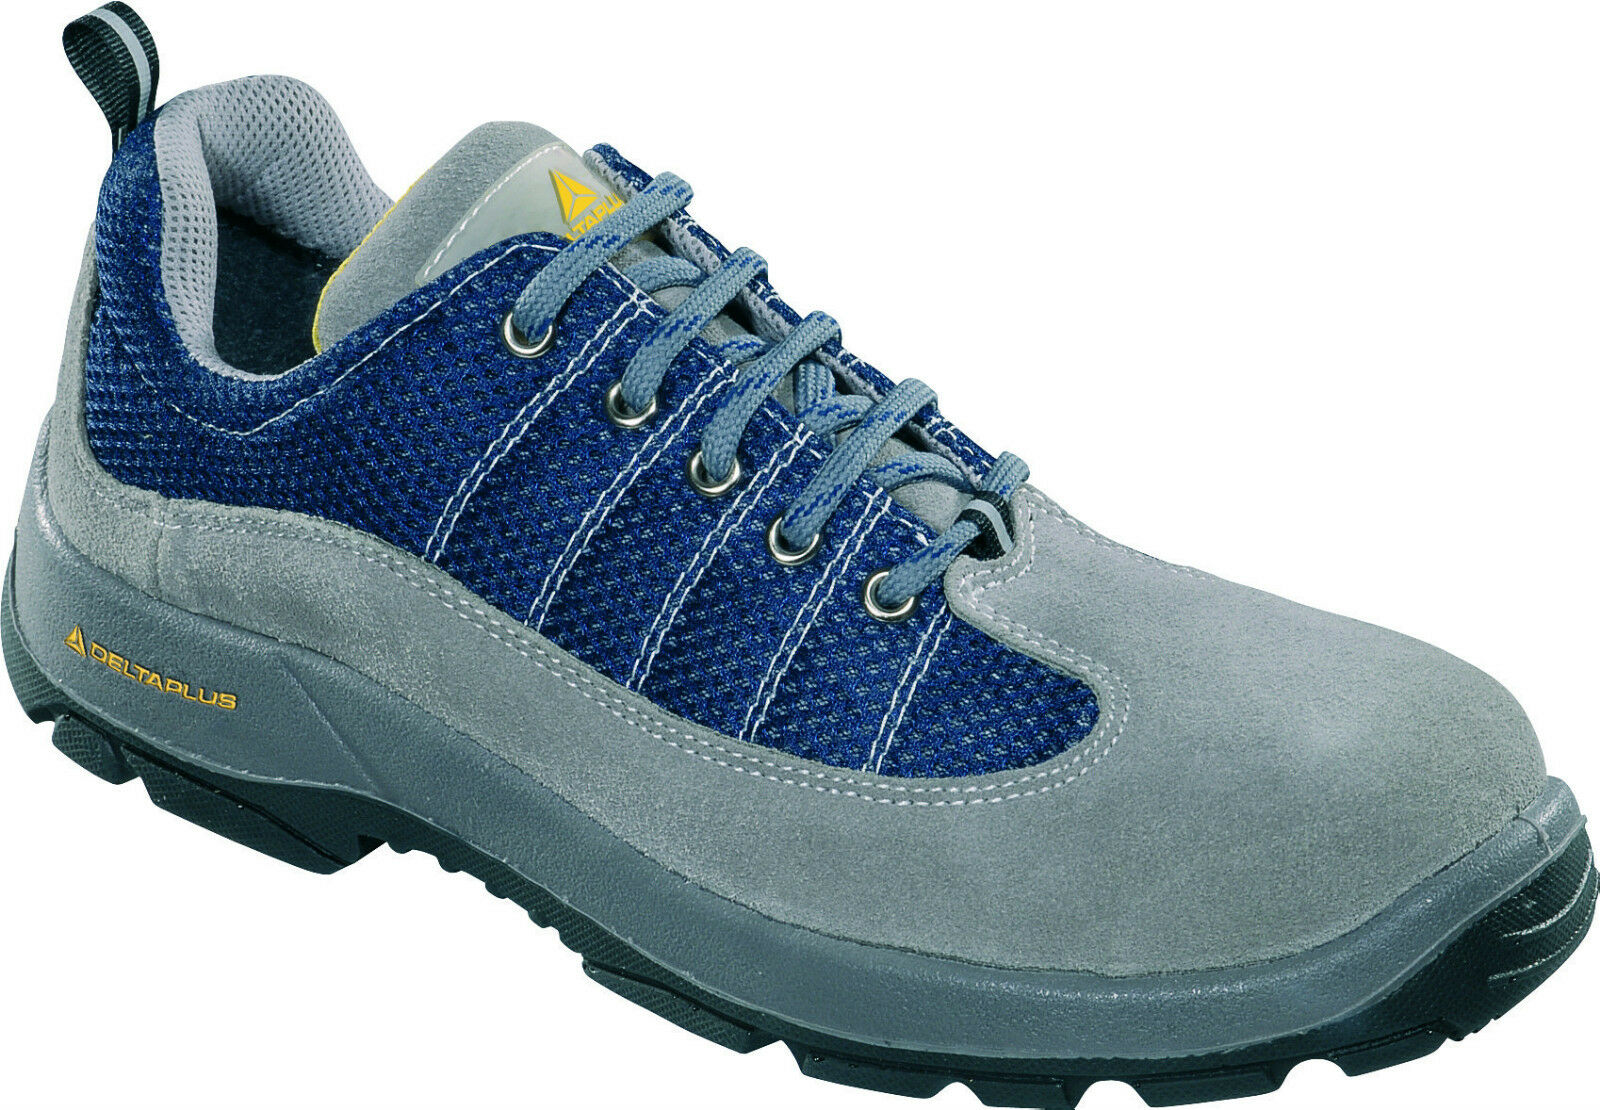 Delta Plus Panoply Rimini 2 S1P Grey Navy bluee Mens Safety Toe Cap Work Trainers